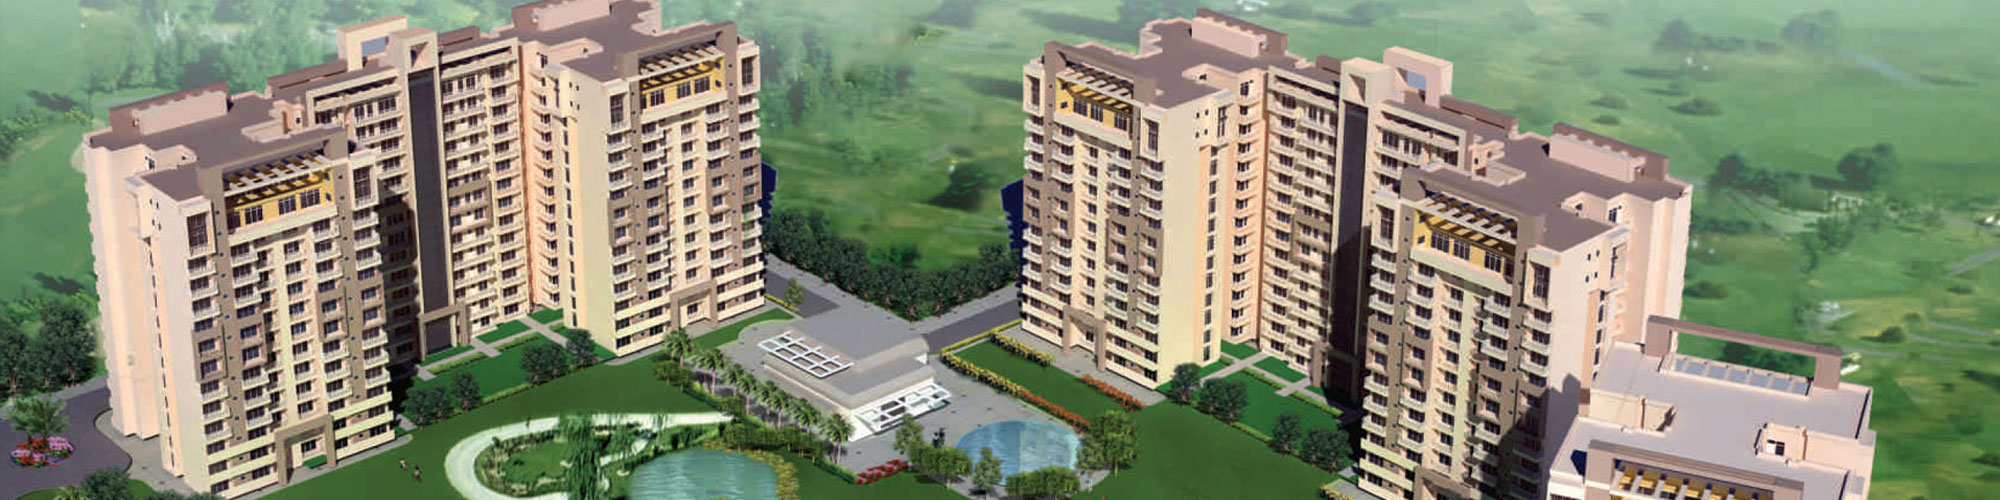 M&M Projects - New Housing Apartments, Flats, Villas and Resorts